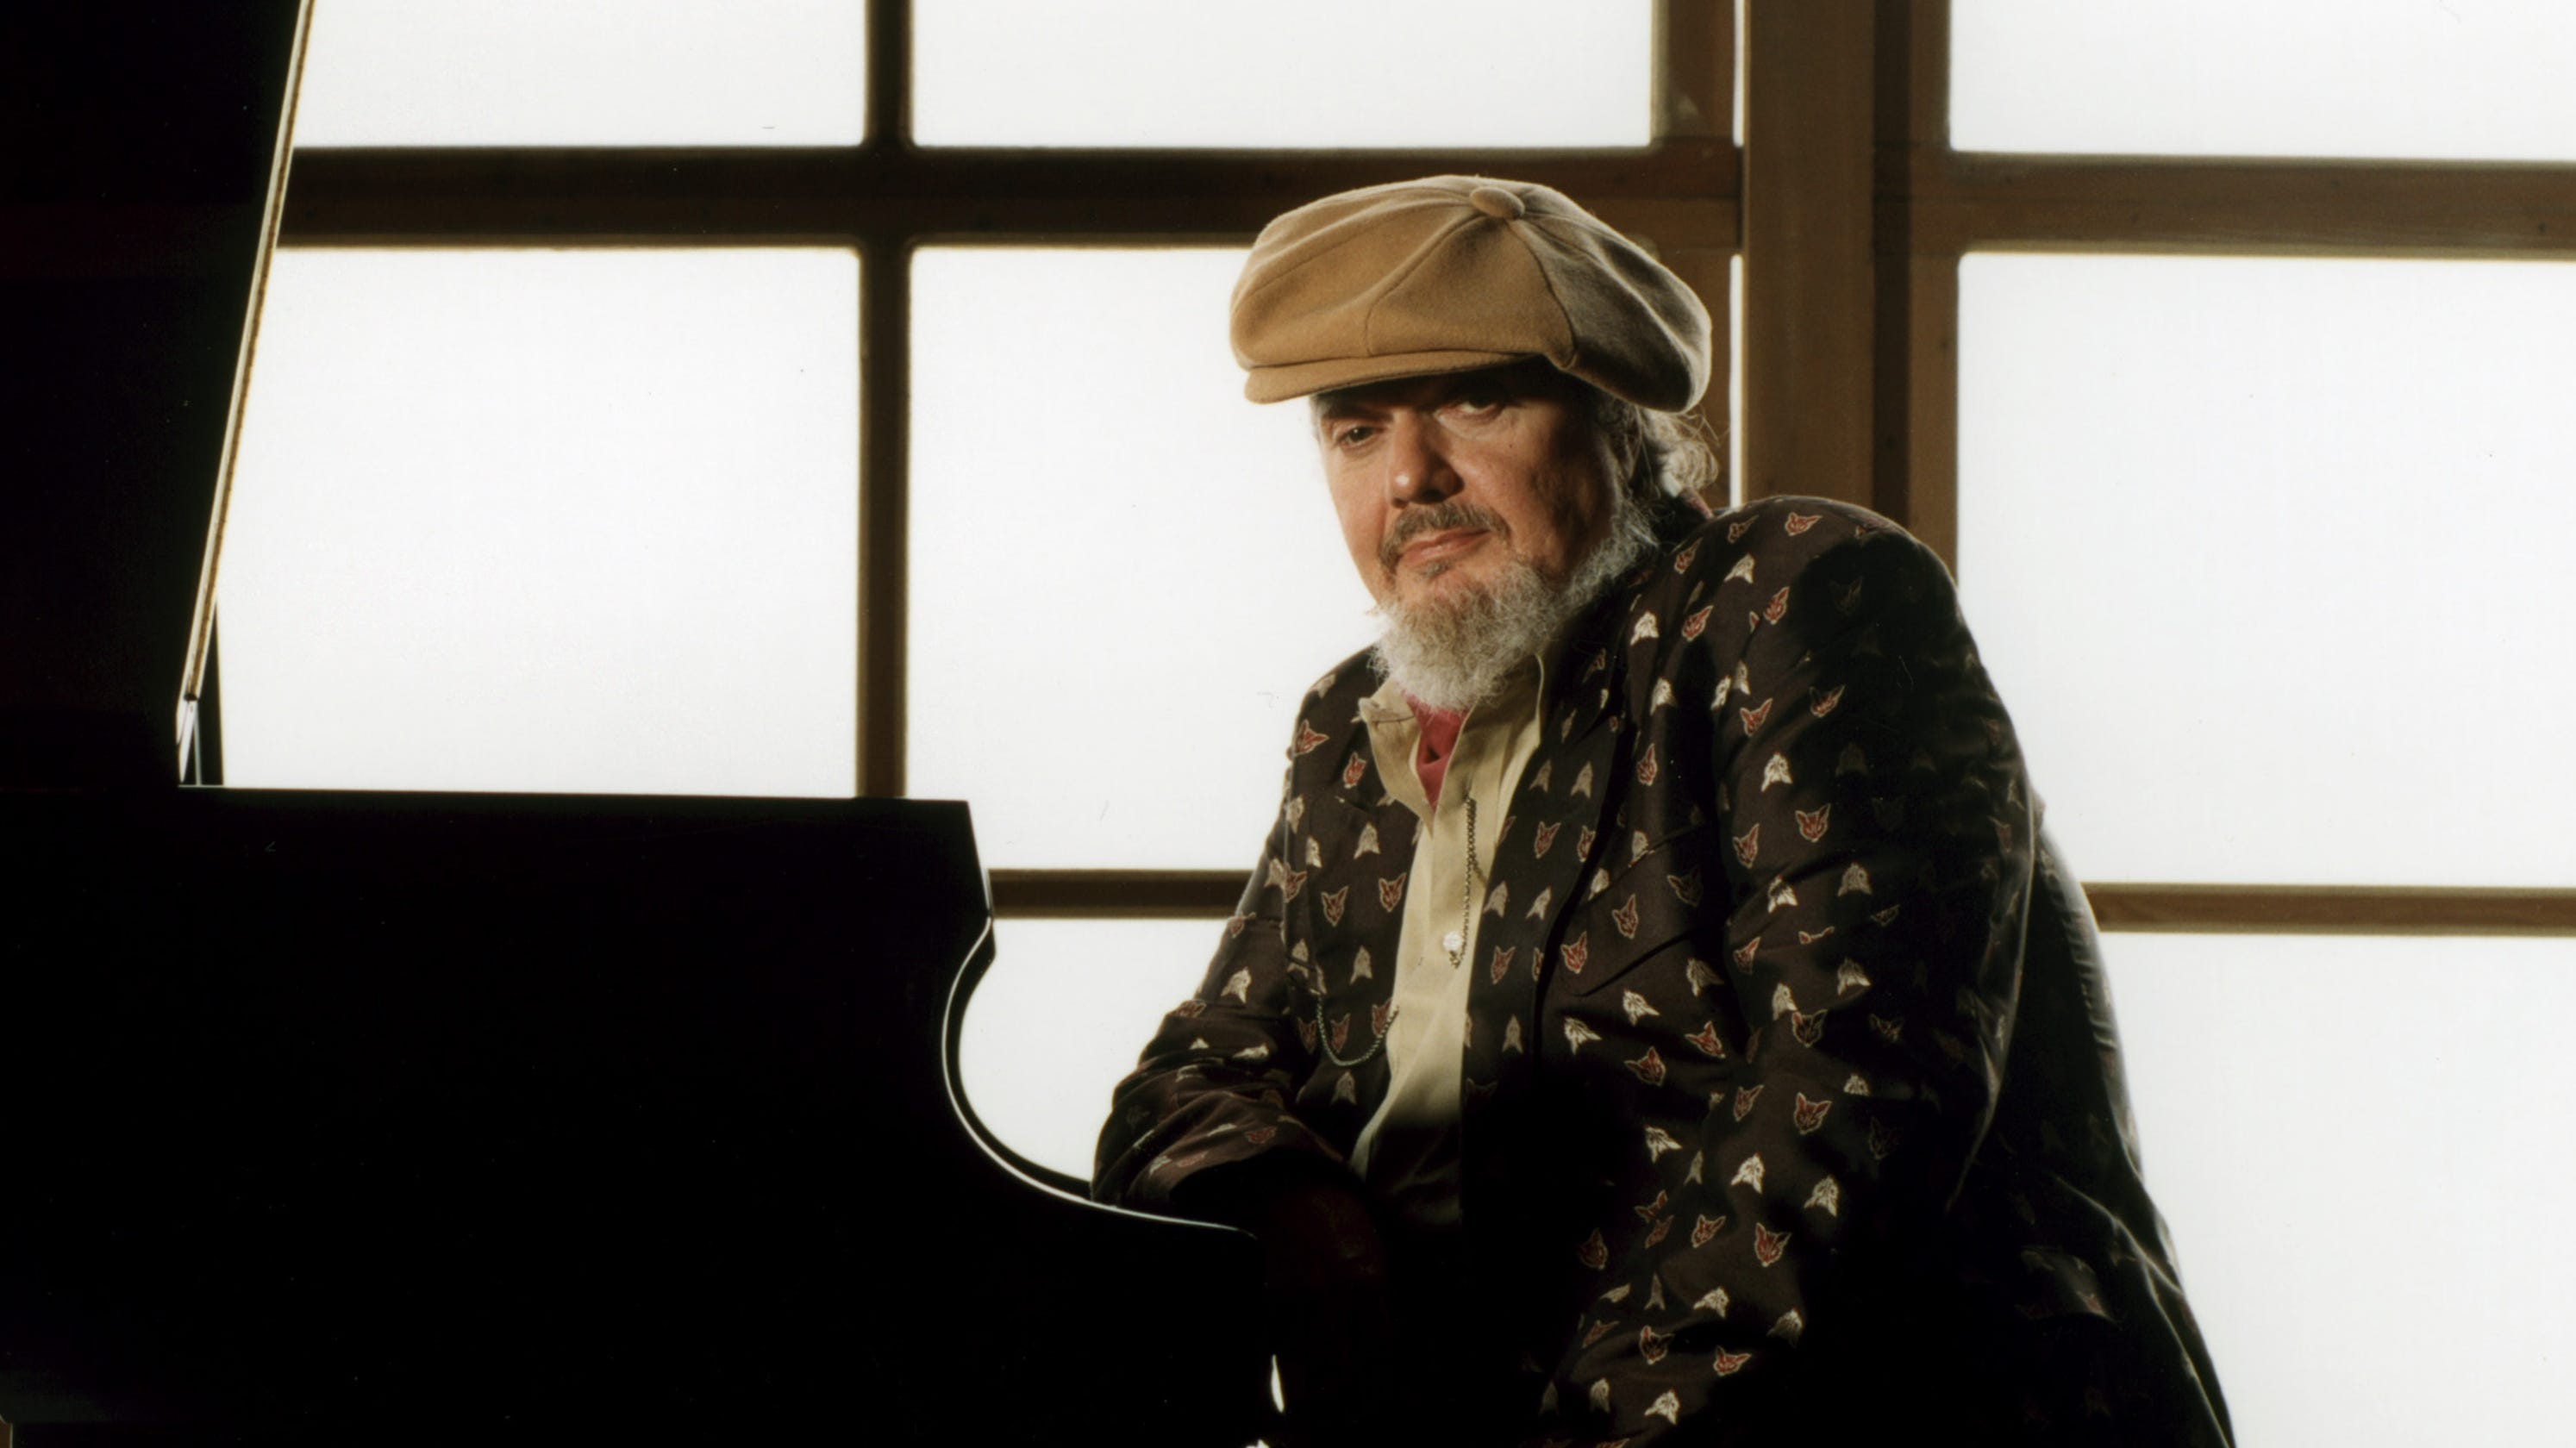 51e15a926 Dr. John, 'Right Place, Wrong Time' hitmaker, has died at 77